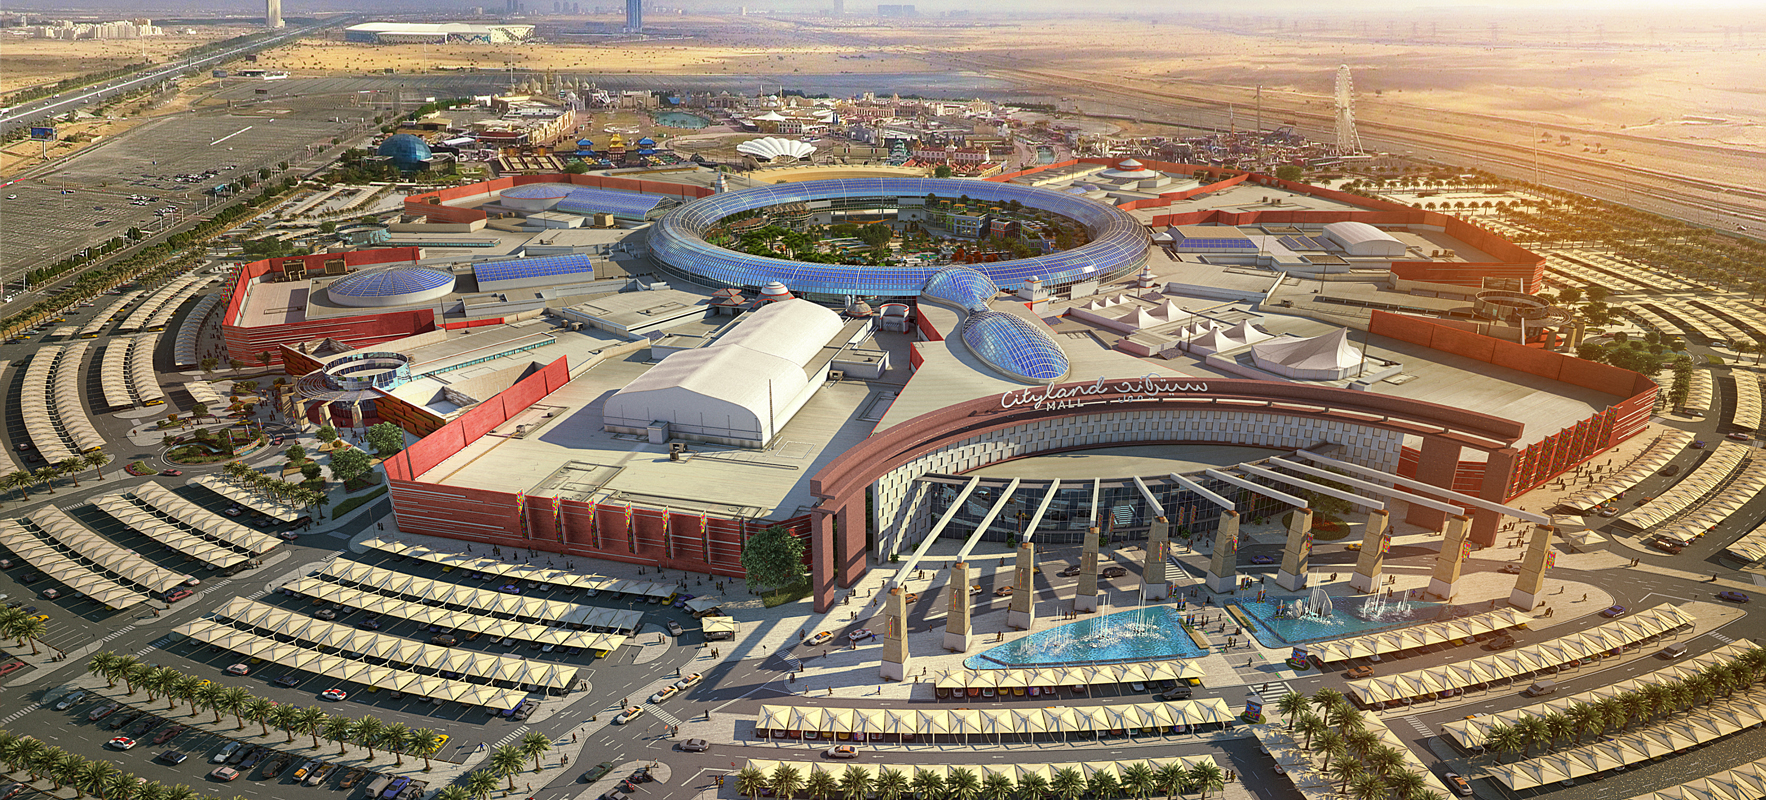 Architecture Plans Cityland Plans Dh1 1bn Mall Near Global Village Around